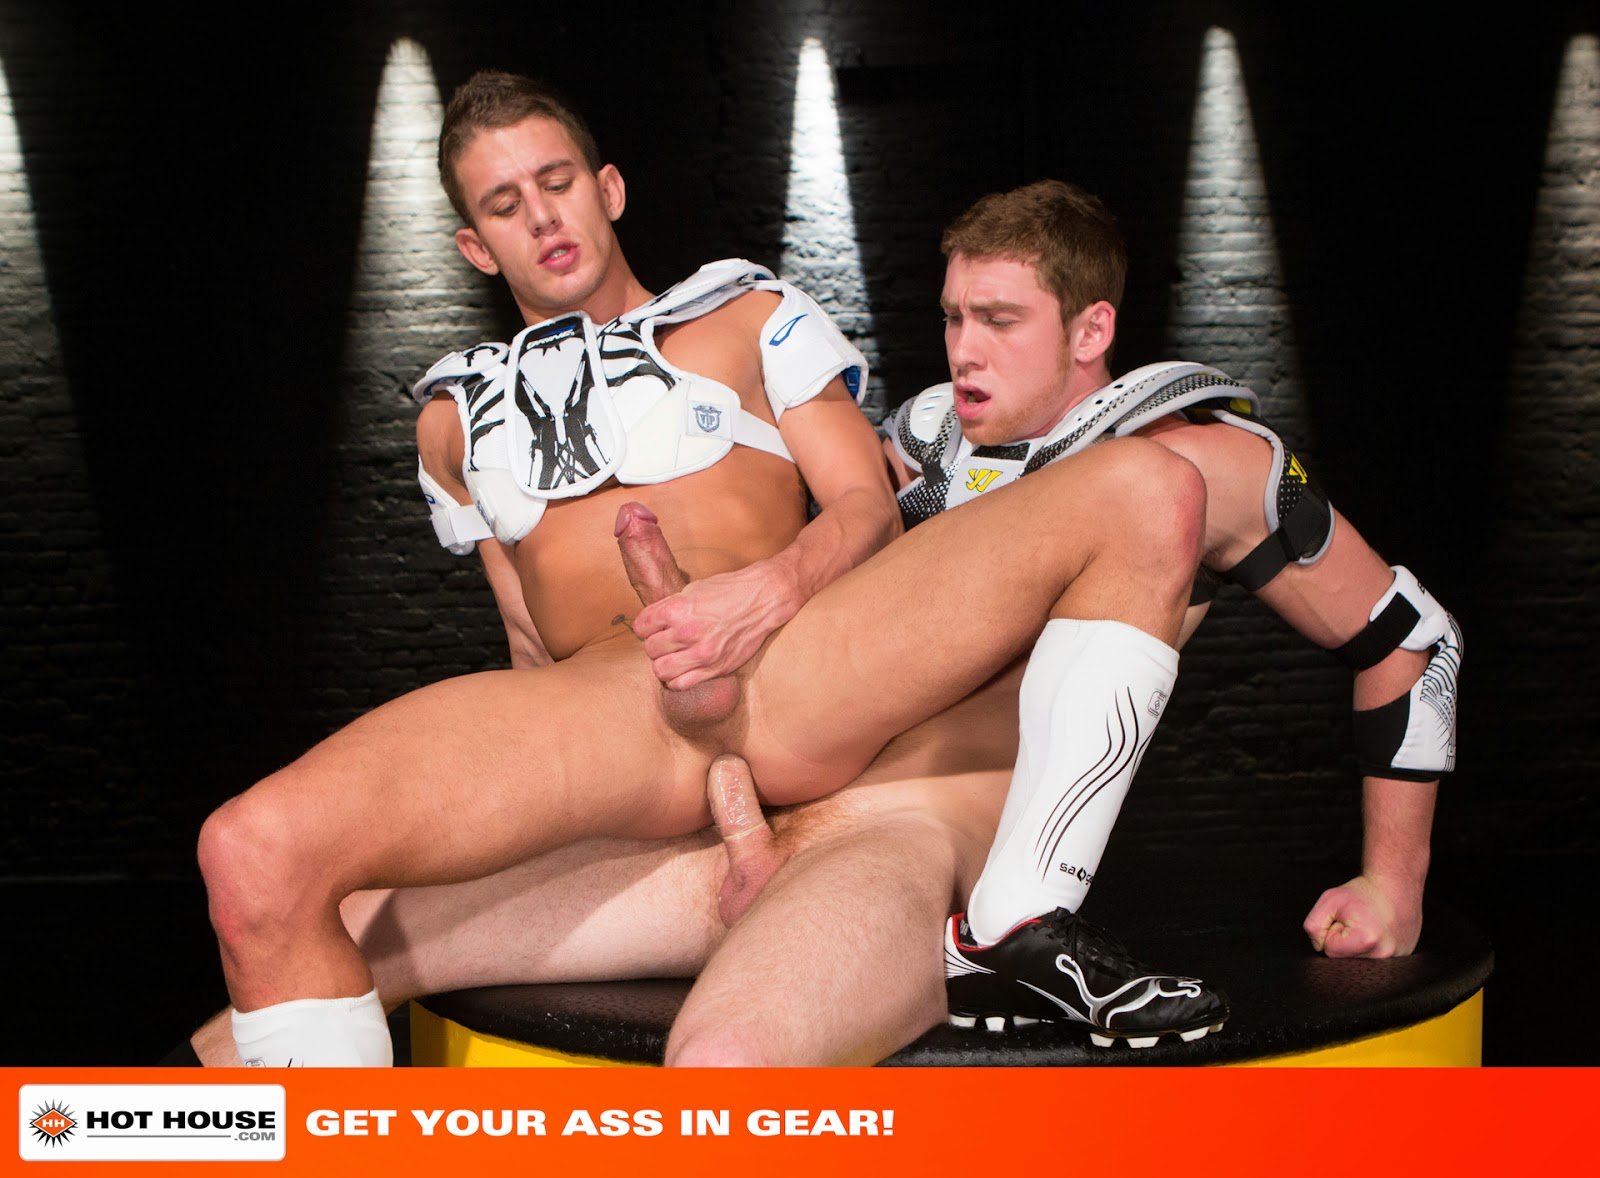 http://juicygayporn.com/category/hot-house-video